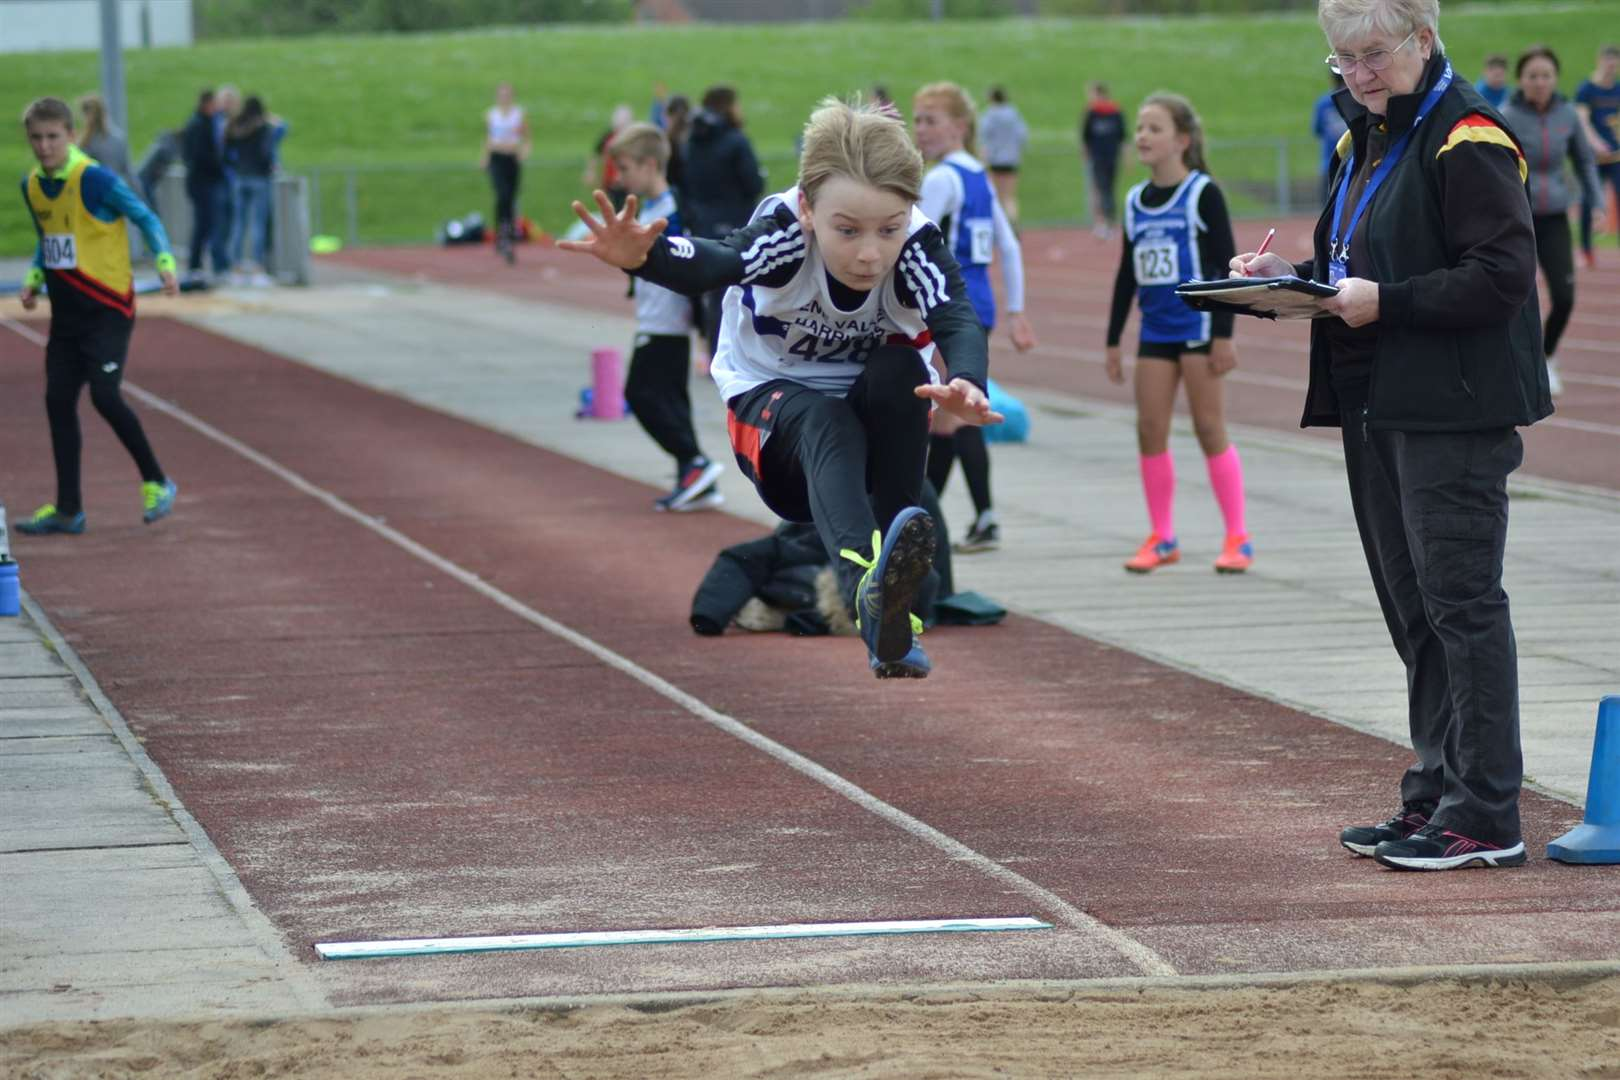 Lawson Capes holds the Lincolnshire under-11 record for the long jump with a personal best of 3.72m set in May.